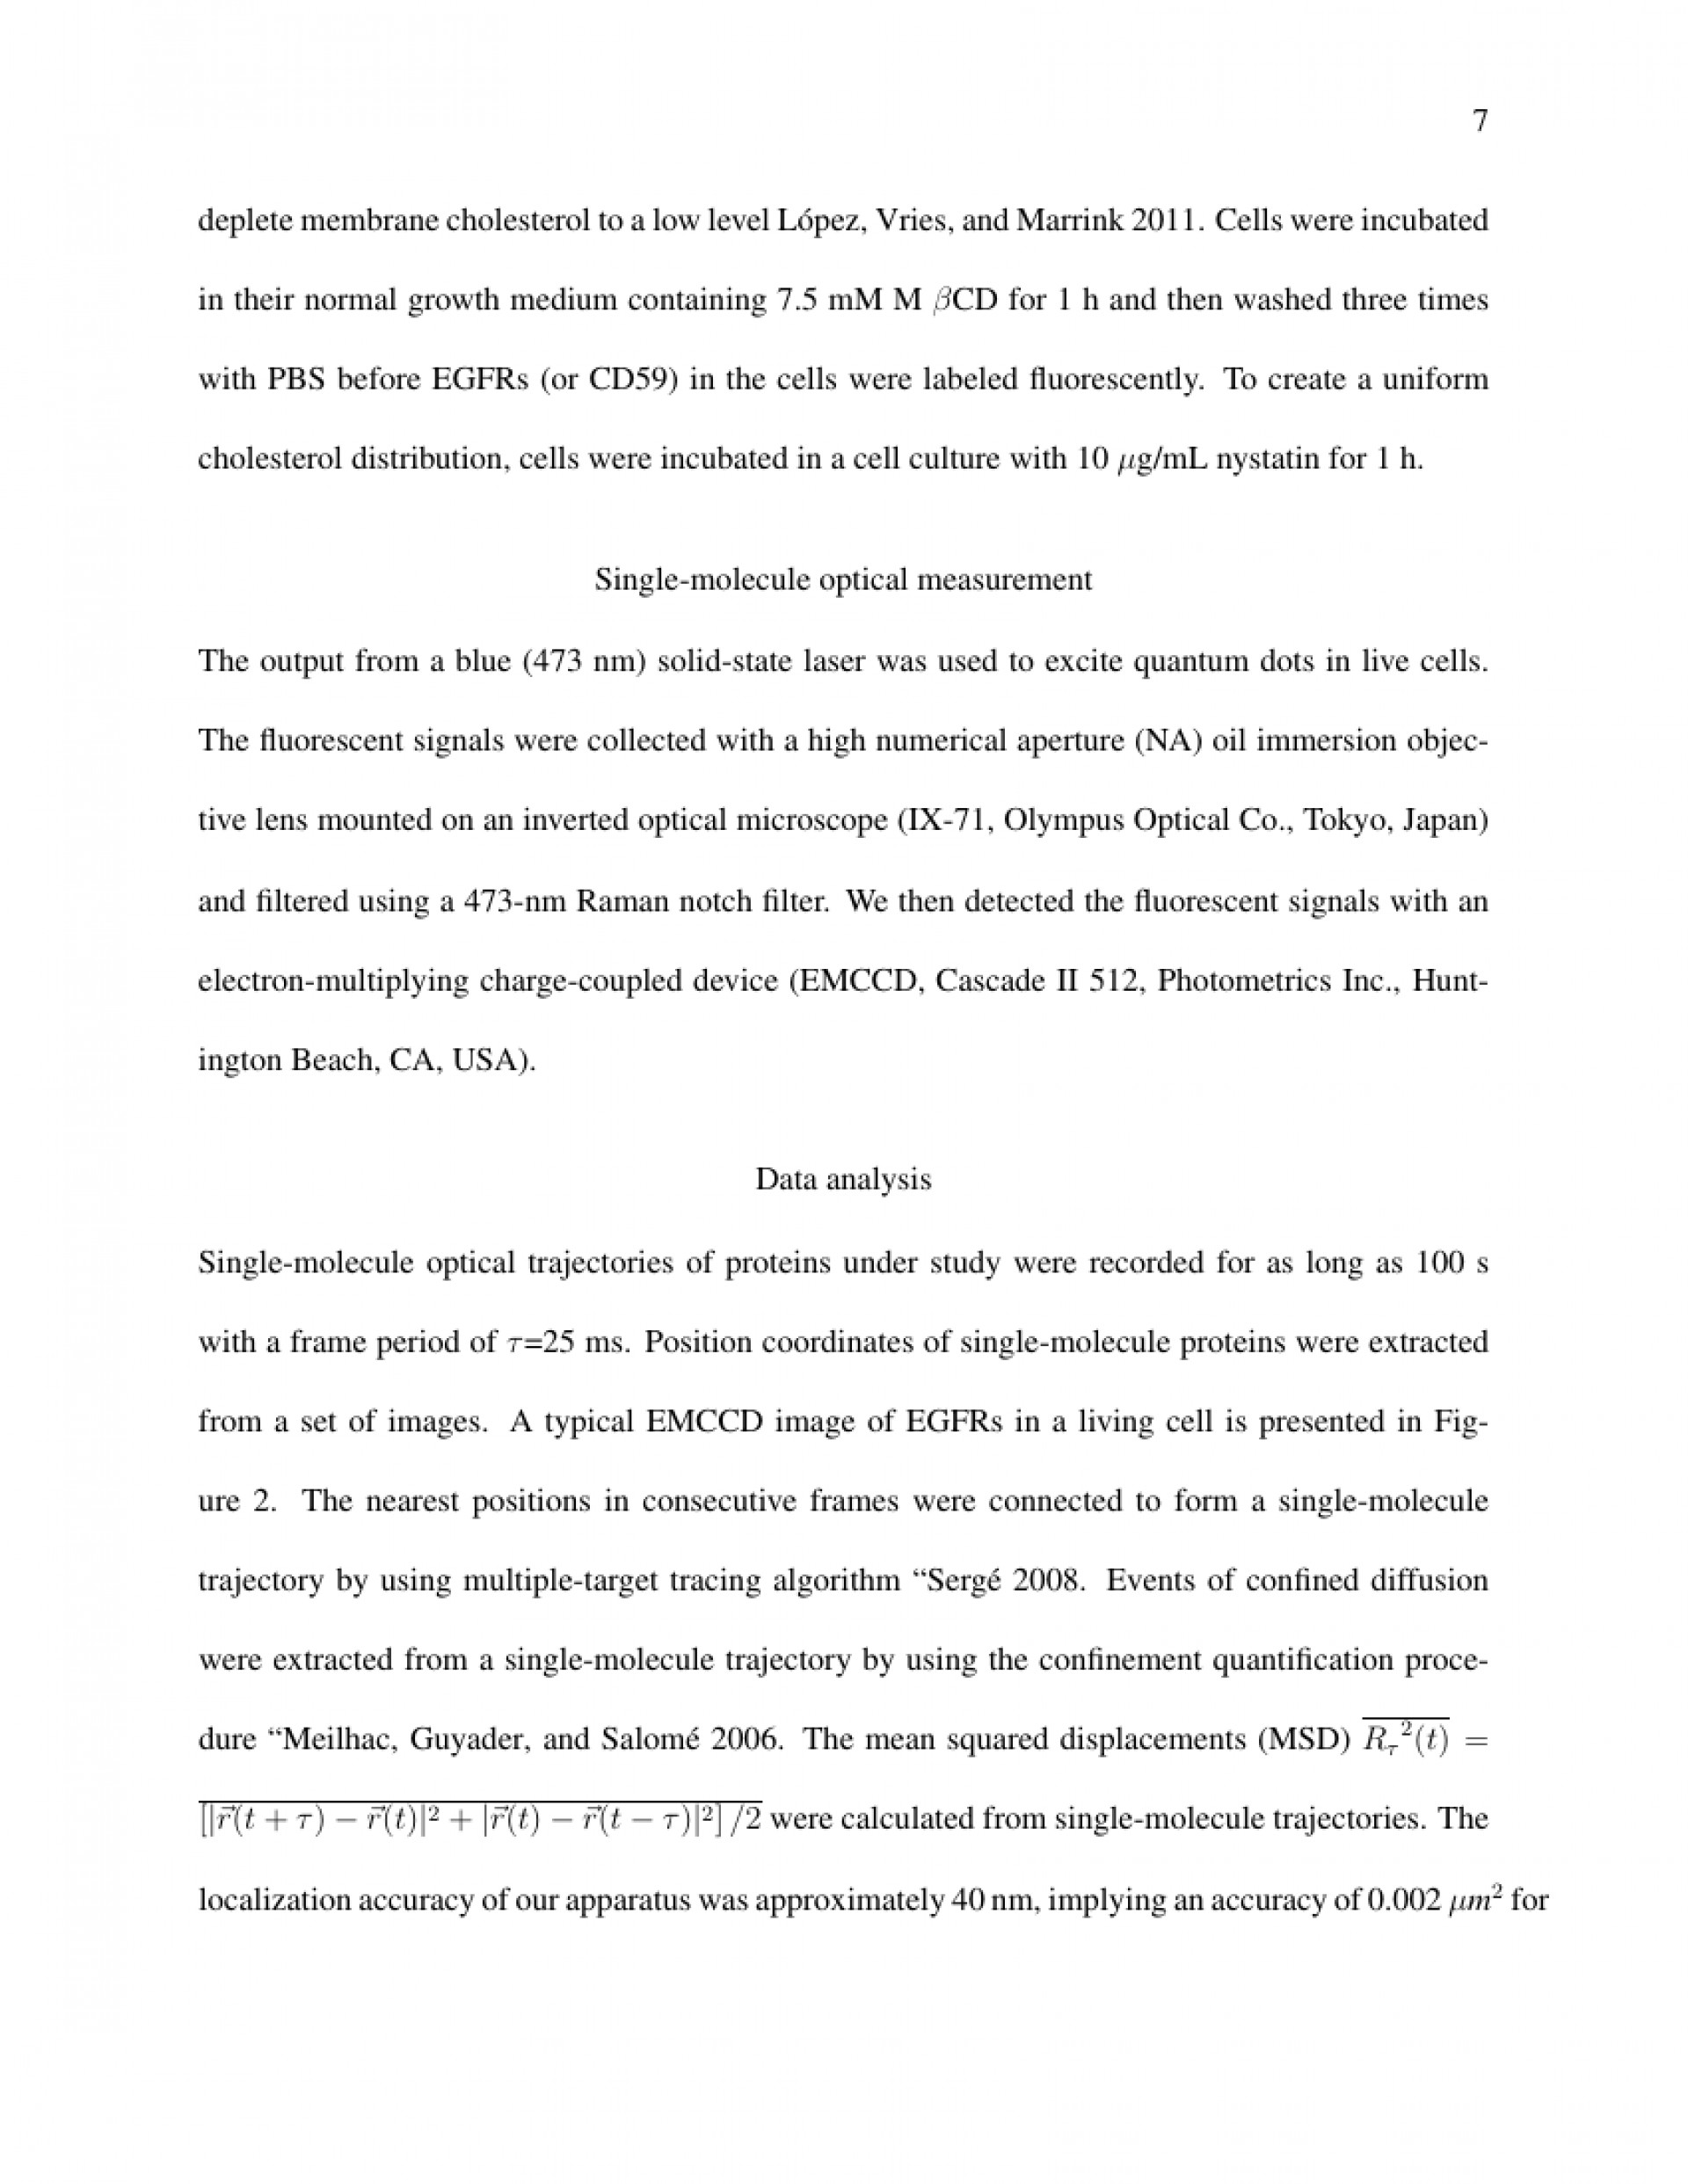 003 Research Paper Article Format Of Awesome Papers Example Apa With Abstract Writing Mla Title Page 1920